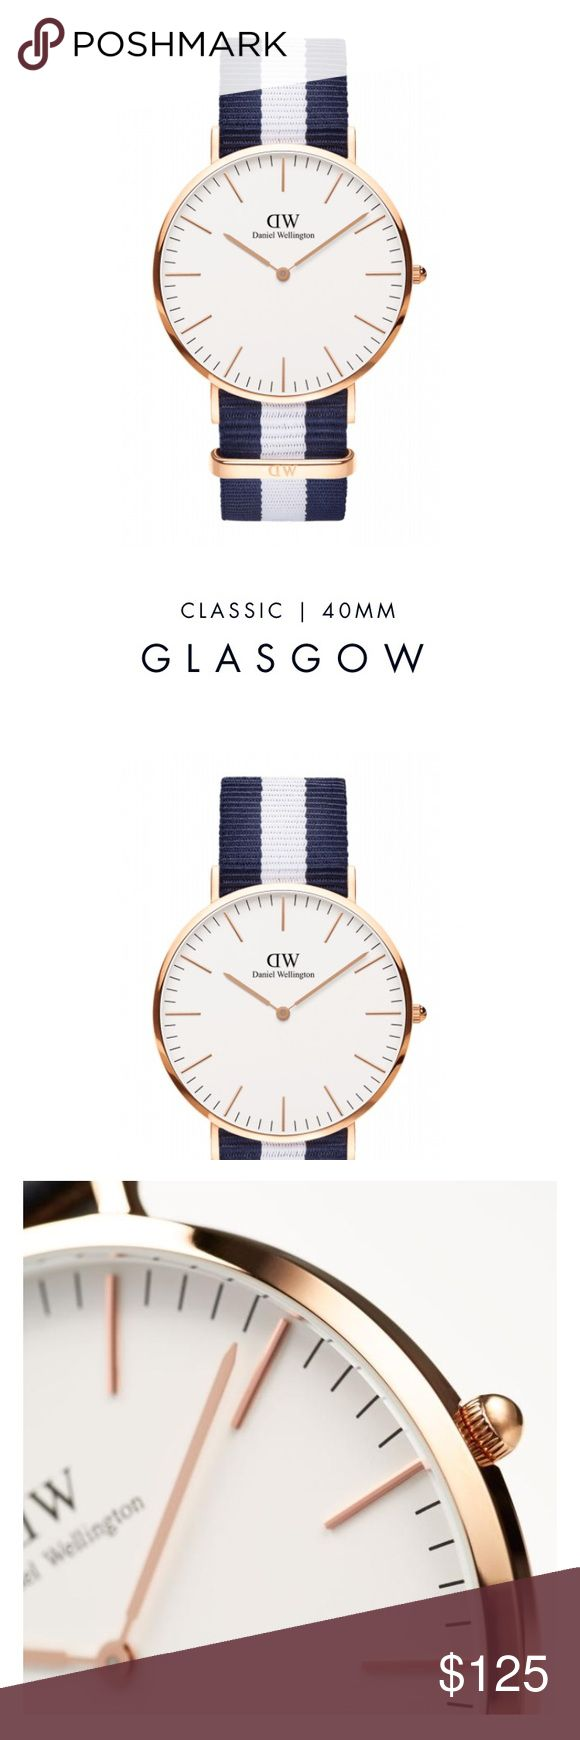 Daniel Wellington NATO Classic Glasgow Rose Gold Brand new in box with tags and manual. Never been worn Ladies Women's Daniel Wellington DW 40mm Classic Glasgow Rose Gold with blue and white NATO nylon Strap. Never been worn. New in box with tags! $195.00+tax retail. My mom bought this for me but I wear an Apple Watch everyday instead. Worth $215 dollars brand new. Daniel Wellington Accessories Watches